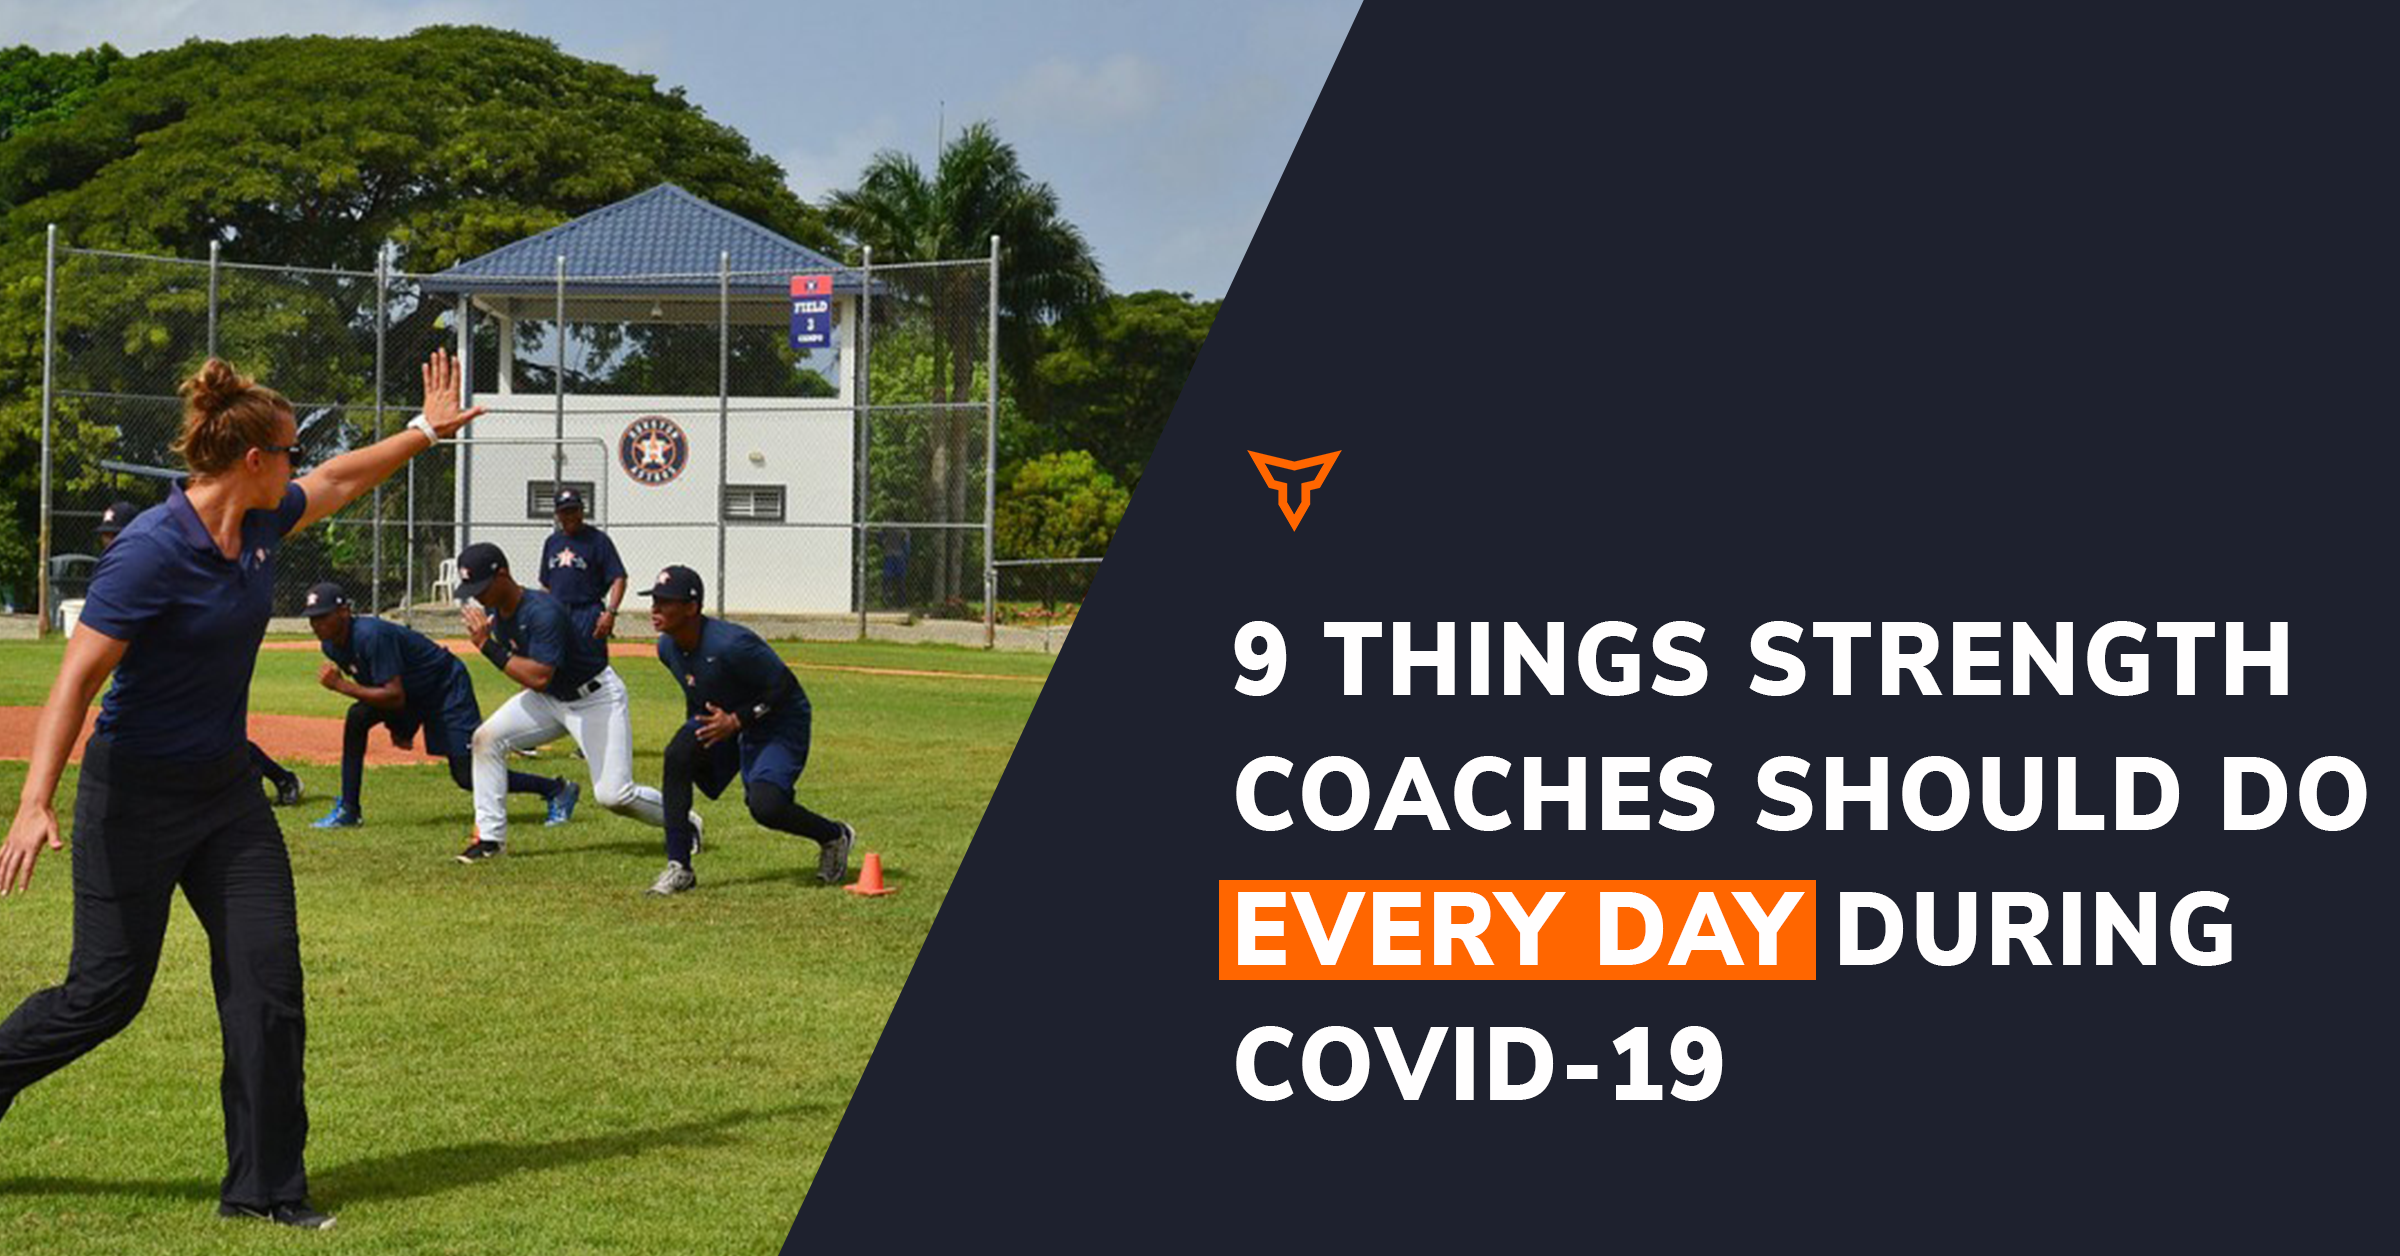 eBook 9 things coaches do card image